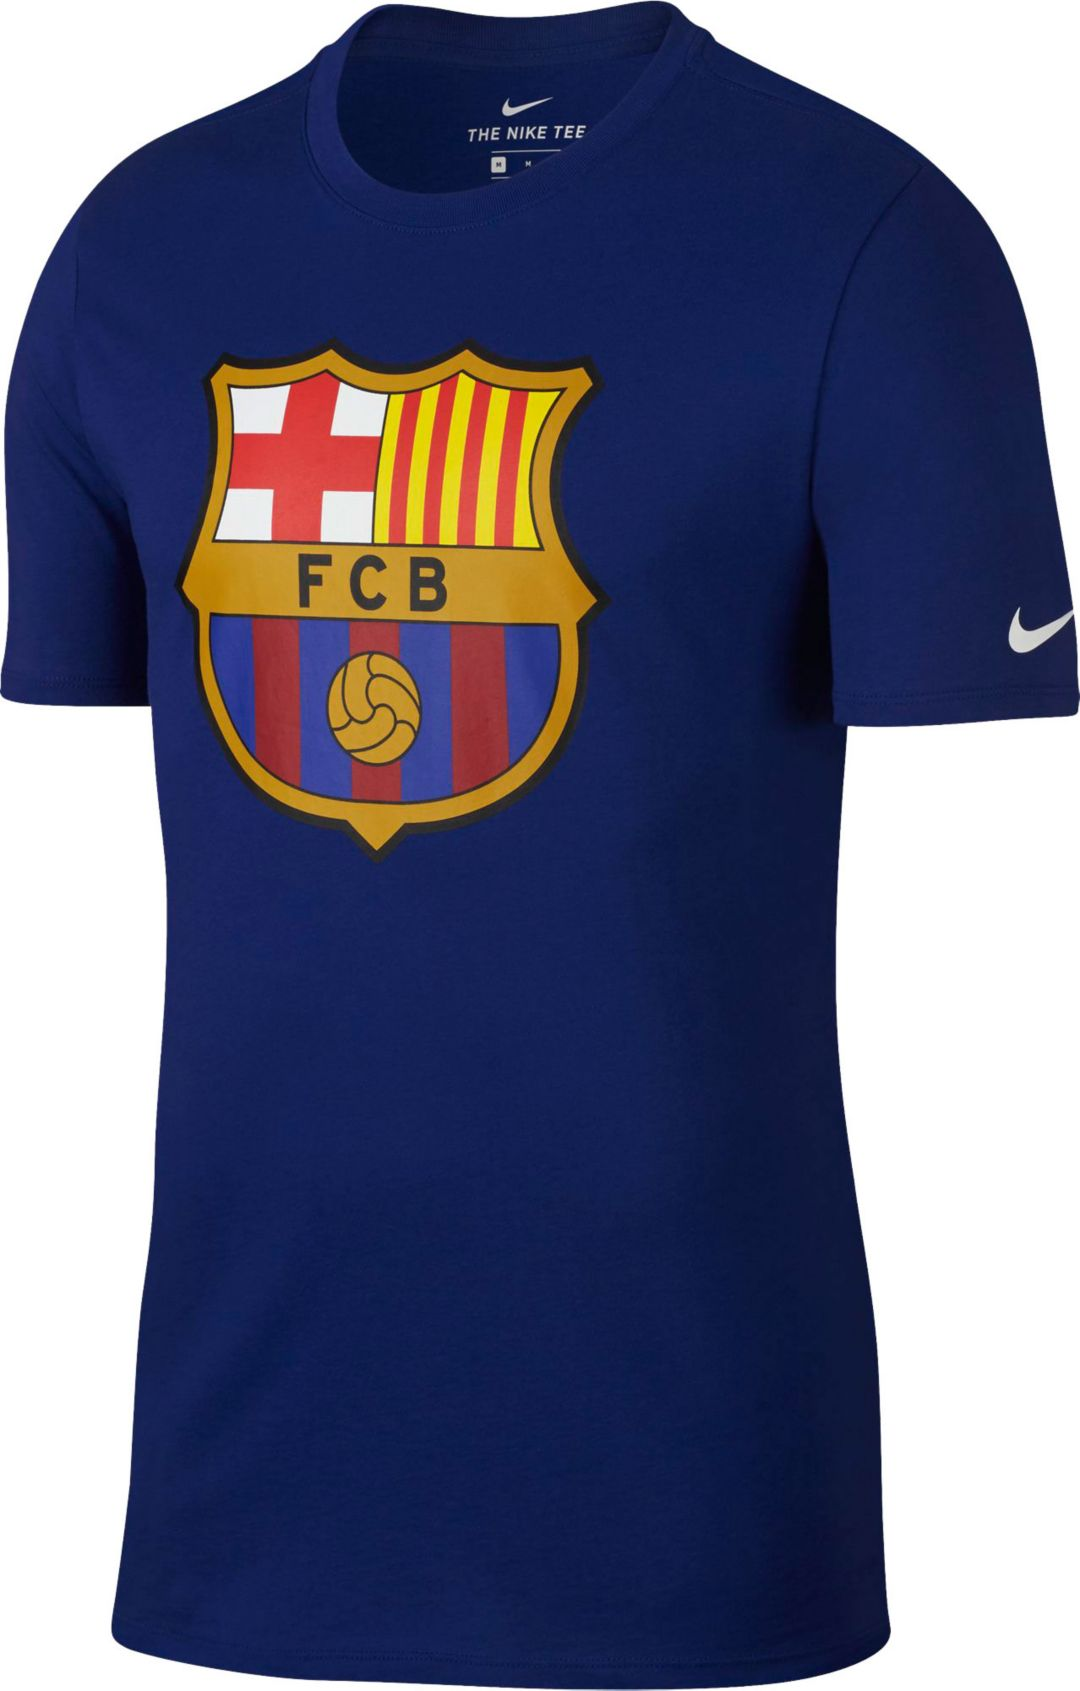 bb5beac9d44 Nike Men's FC Barcelona Crest Blue T-Shirt | DICK'S Sporting Goods